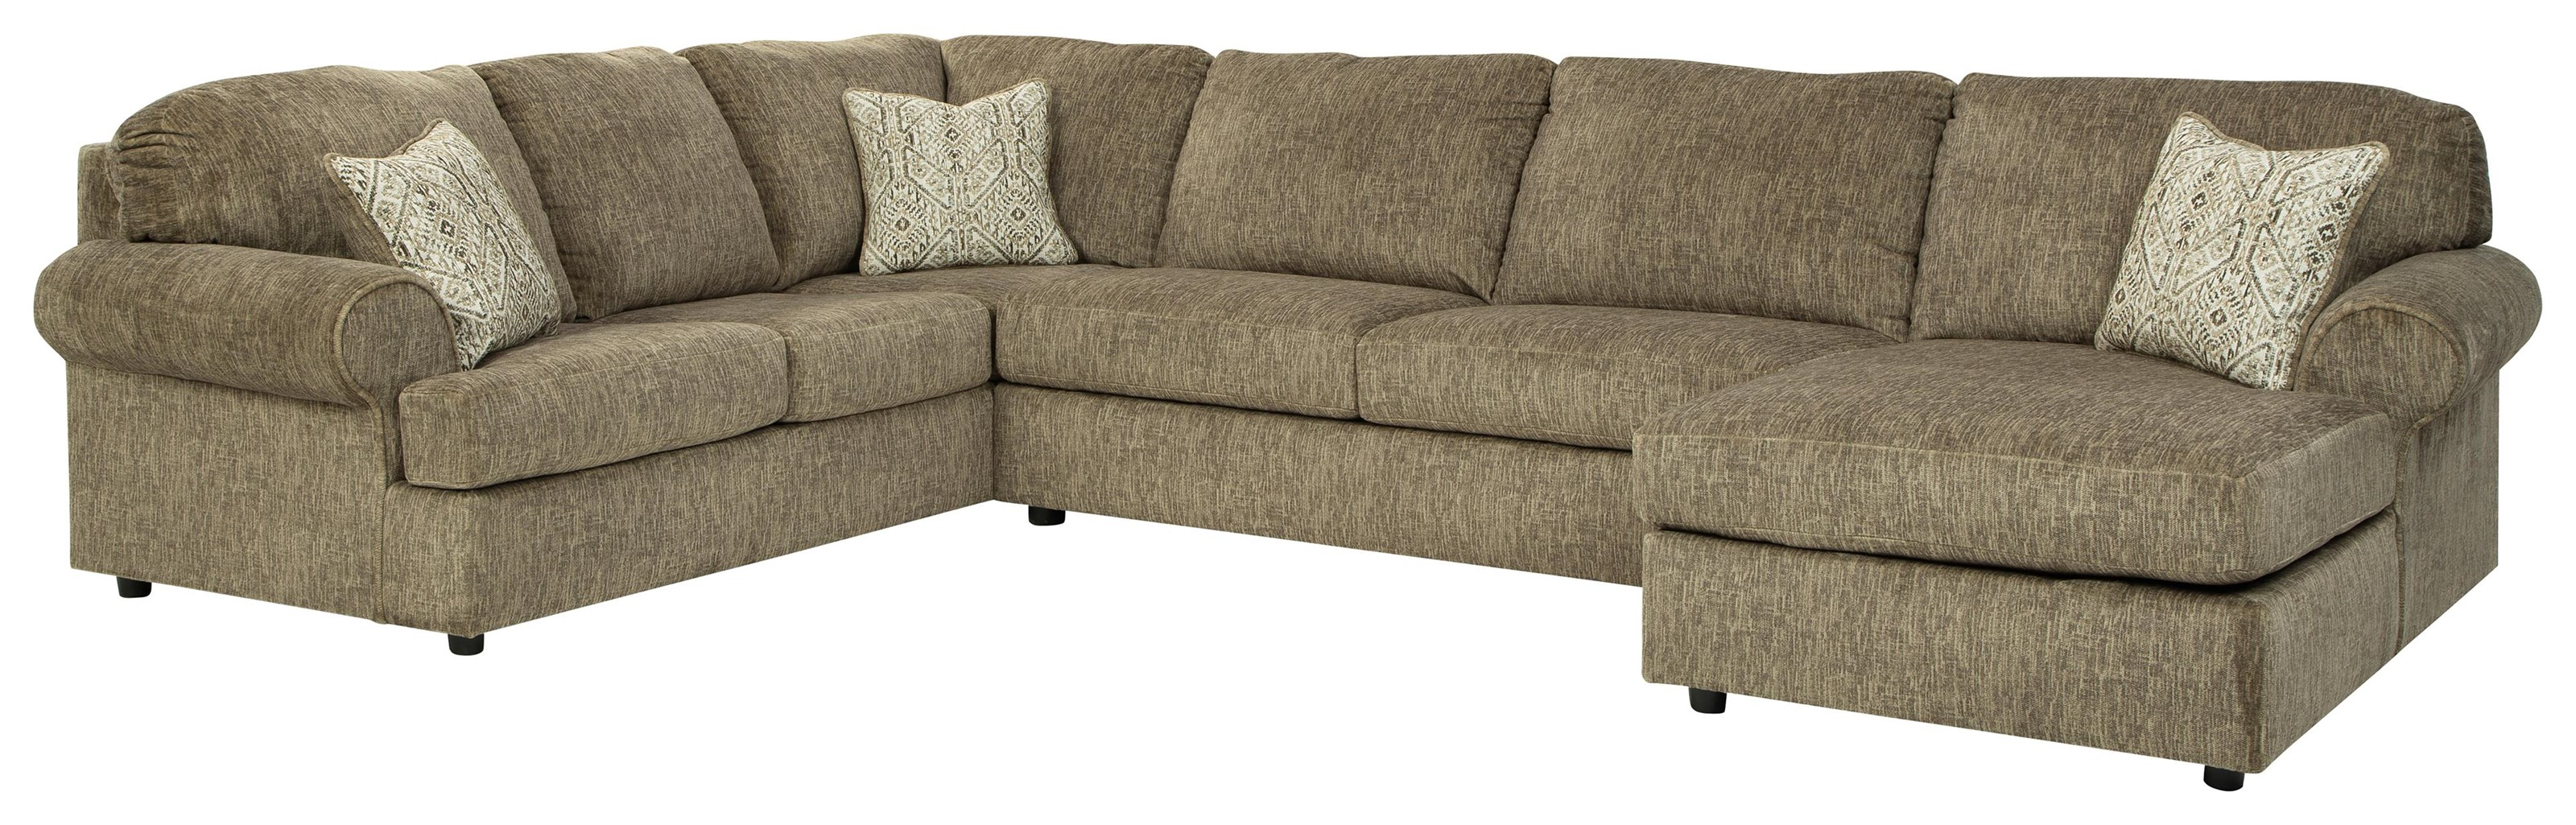 3 PIECE LAF SECTIONAL